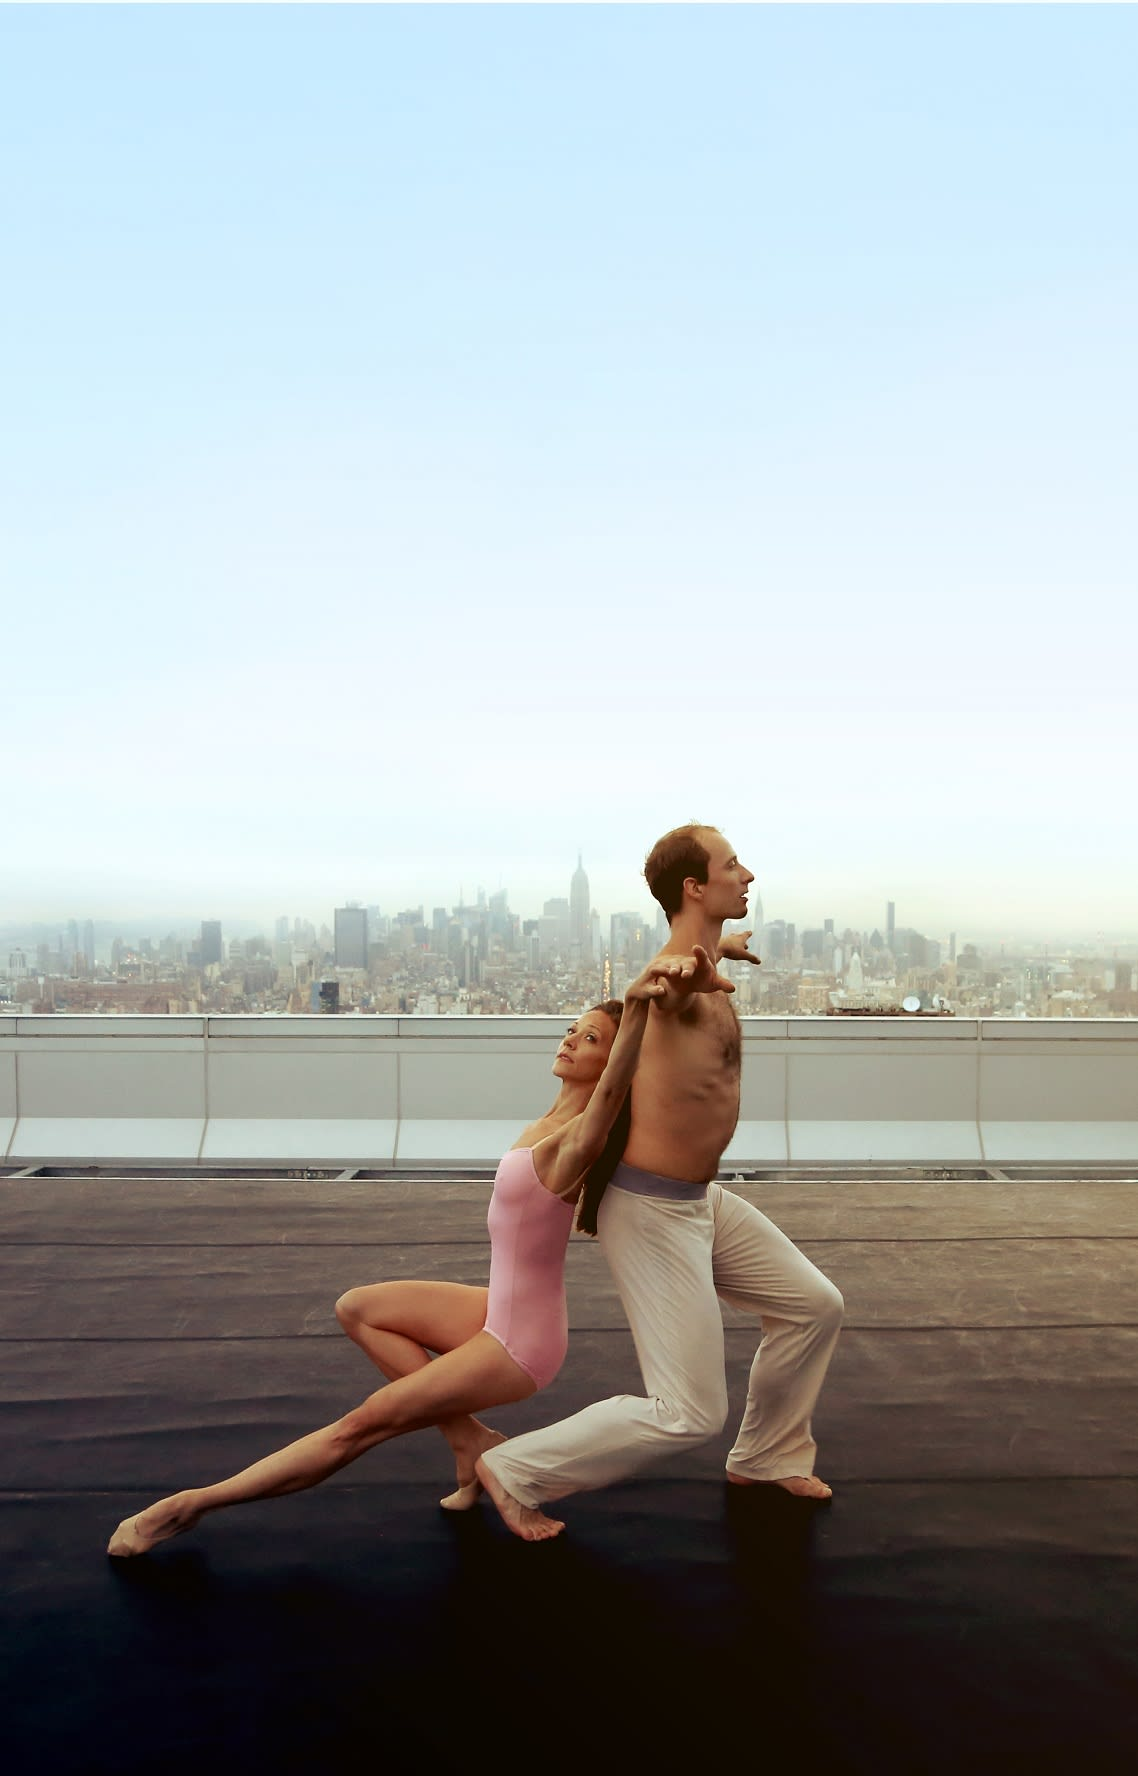 NYCB NEW BEGINNINGS: